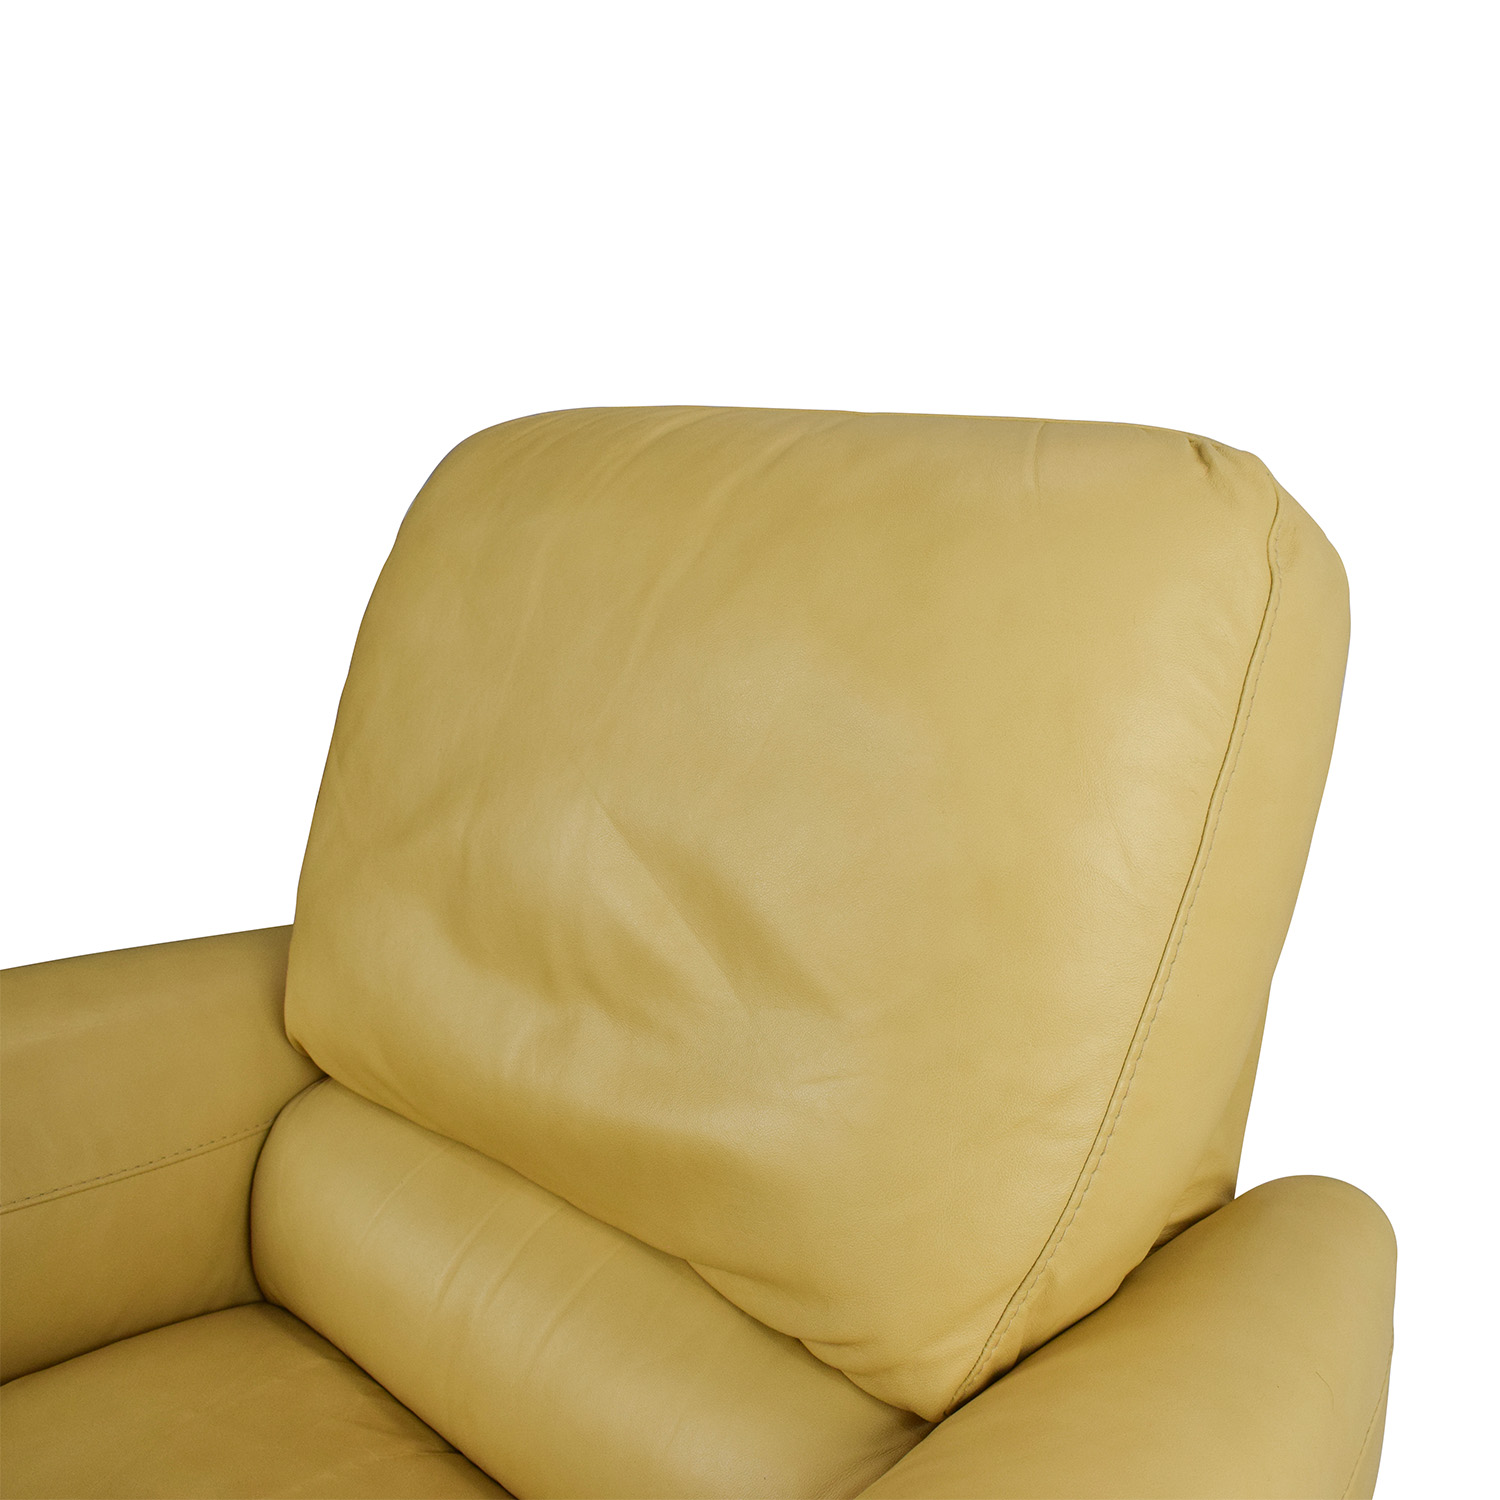 ... buy Macy\u0027s Macy\u0027s Recliner Chair online  sc 1 st  Furnishare & 89% OFF - Macy\u0027s Macy\u0027s Recliner Chair / Chairs islam-shia.org